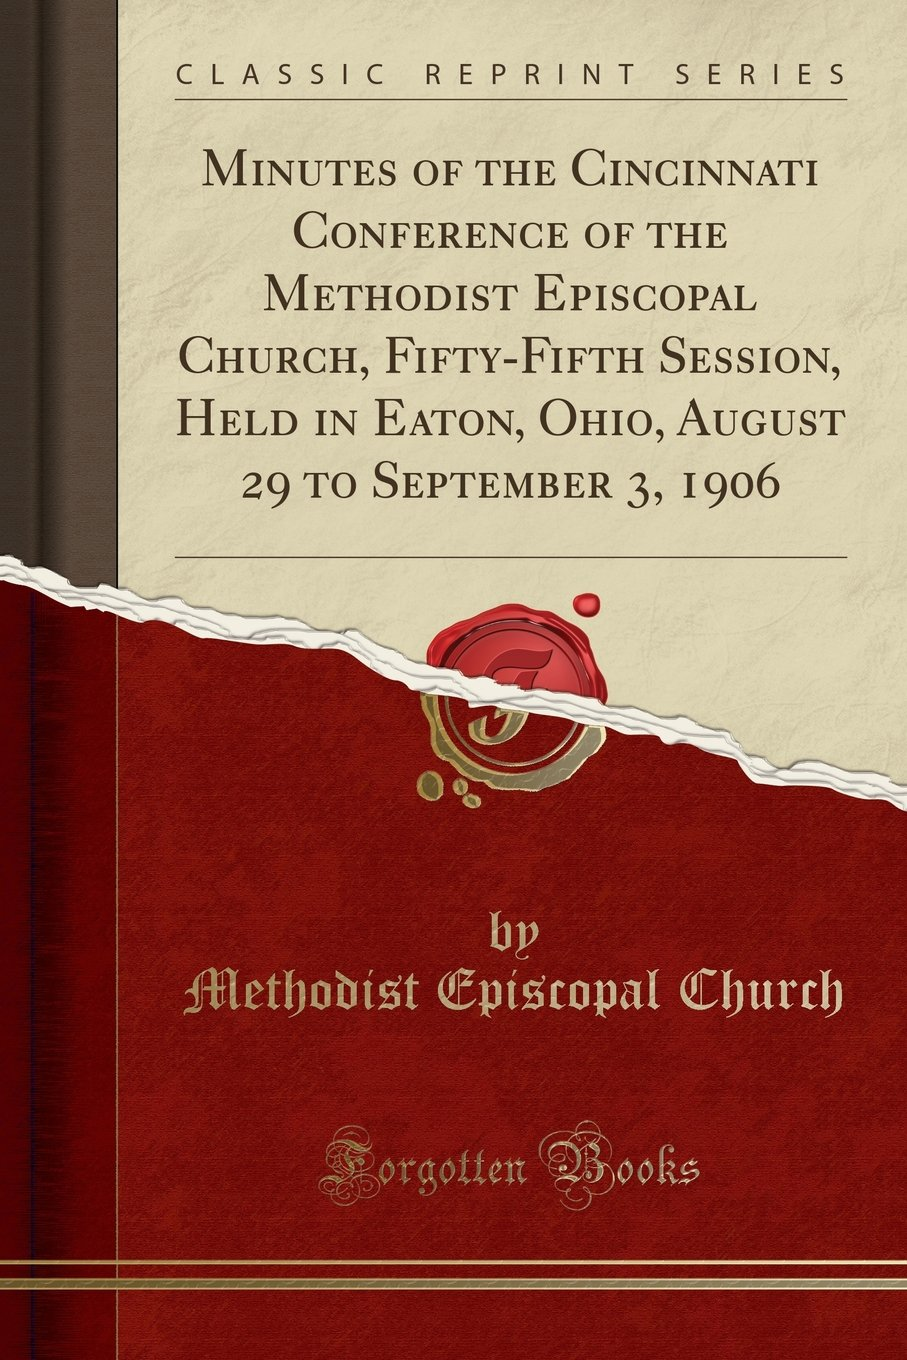 Minutes of the Cincinnati Conference of the Methodist Episcopal Church, Fifty-Fifth Session, Held in Eaton, Ohio, August 29 to September 3, 1906 (Classic Reprint) pdf epub